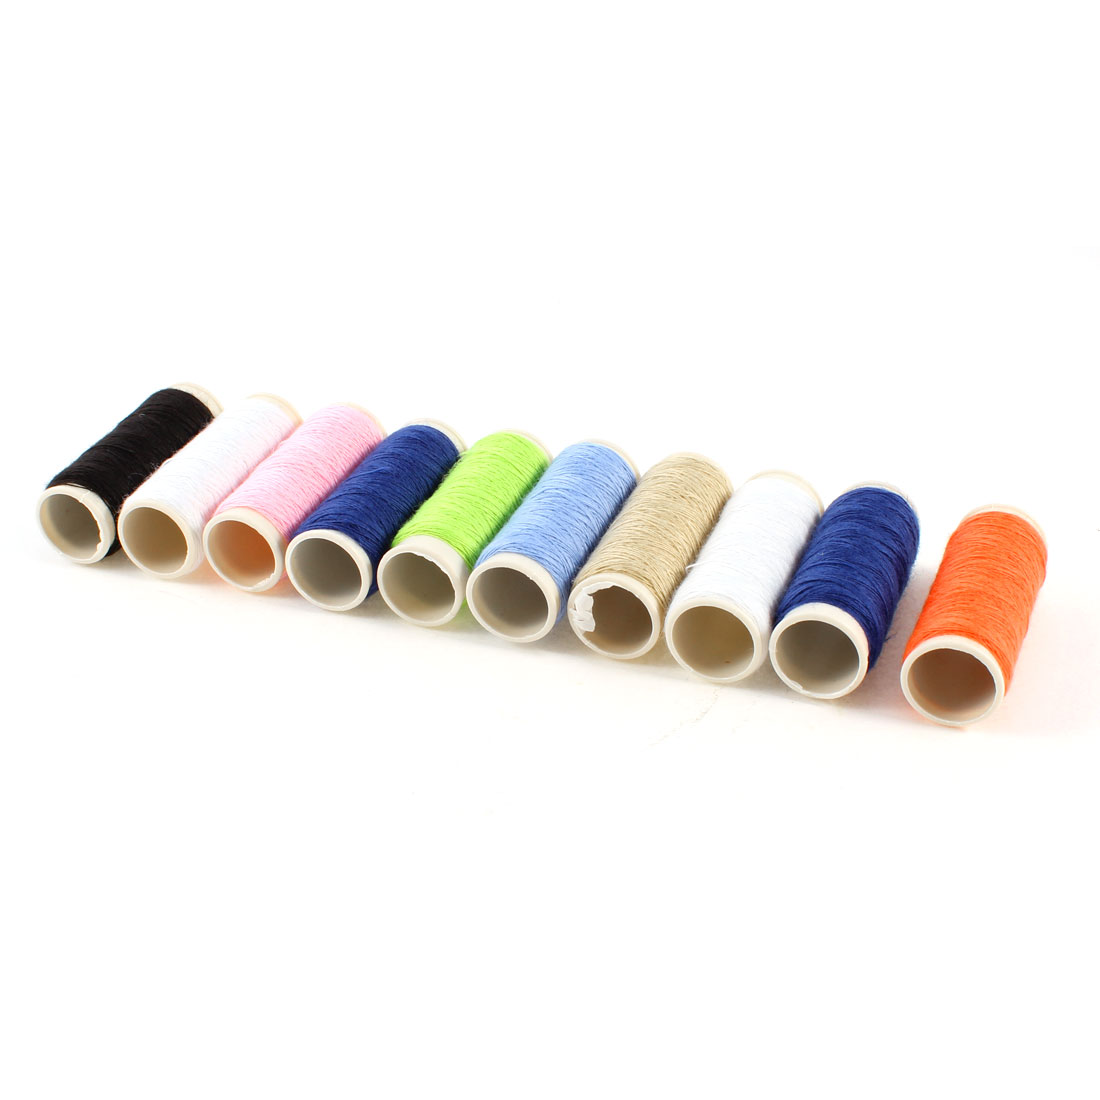 10 Pieces Tailor Multicolor Cotton Stitching Sewing Thread Spools